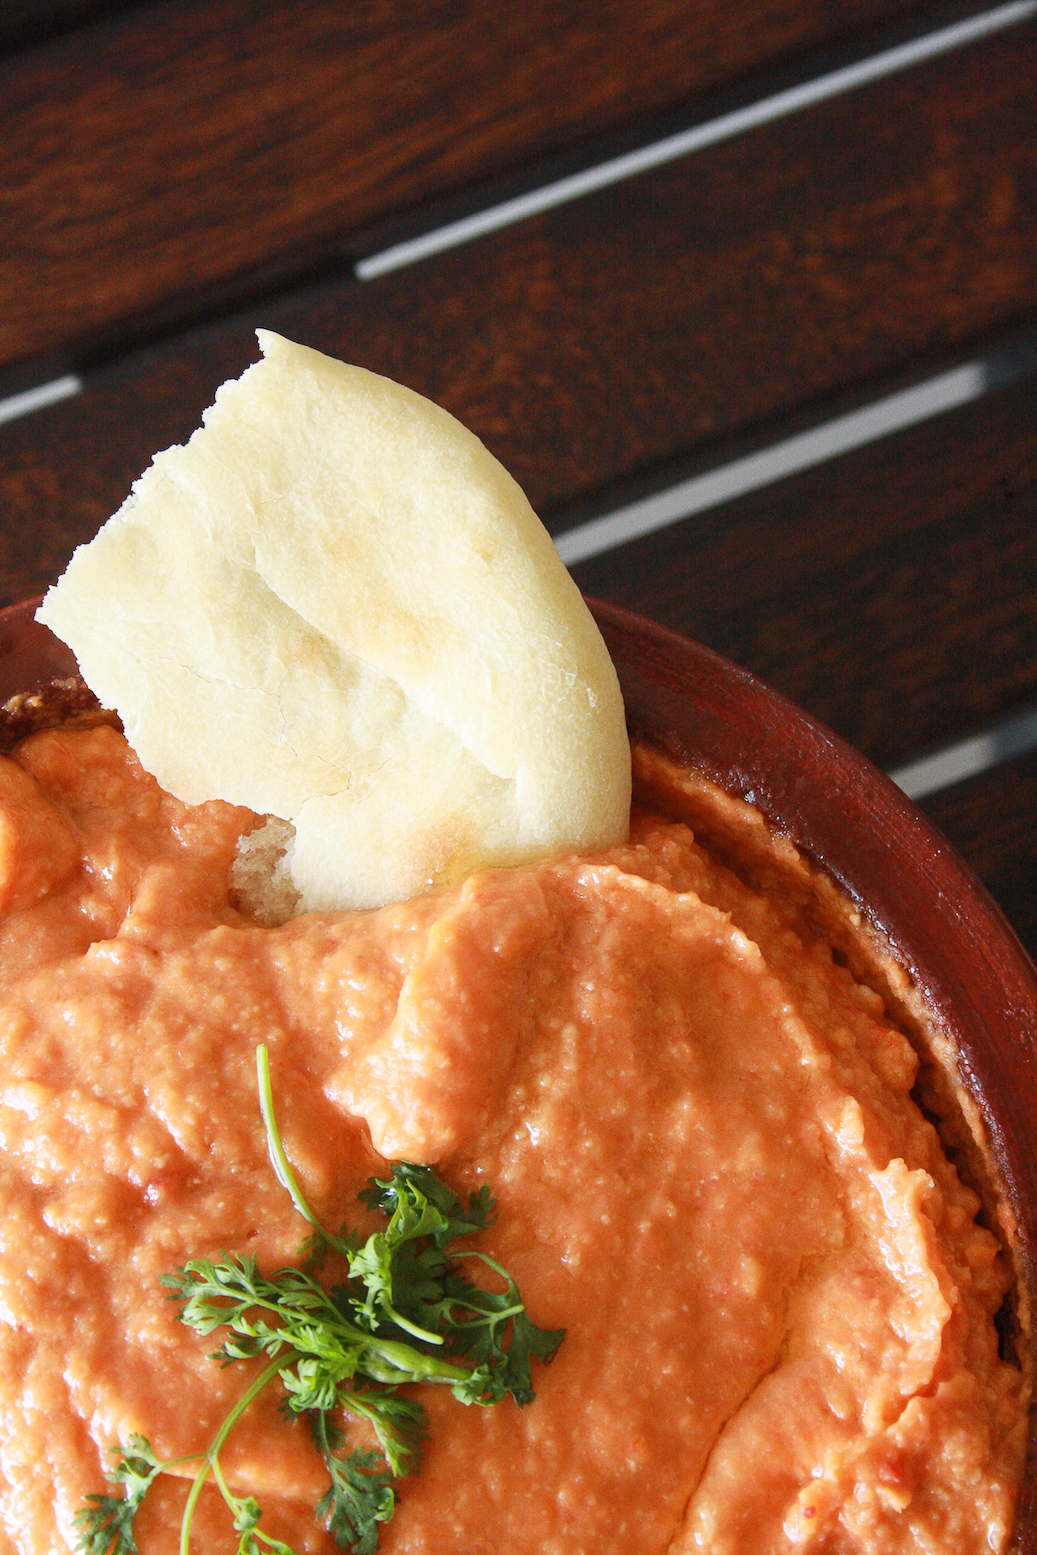 Classic hummus taken up a notch with juicy roasted peppers, served with soft and fluffy homemade pita!